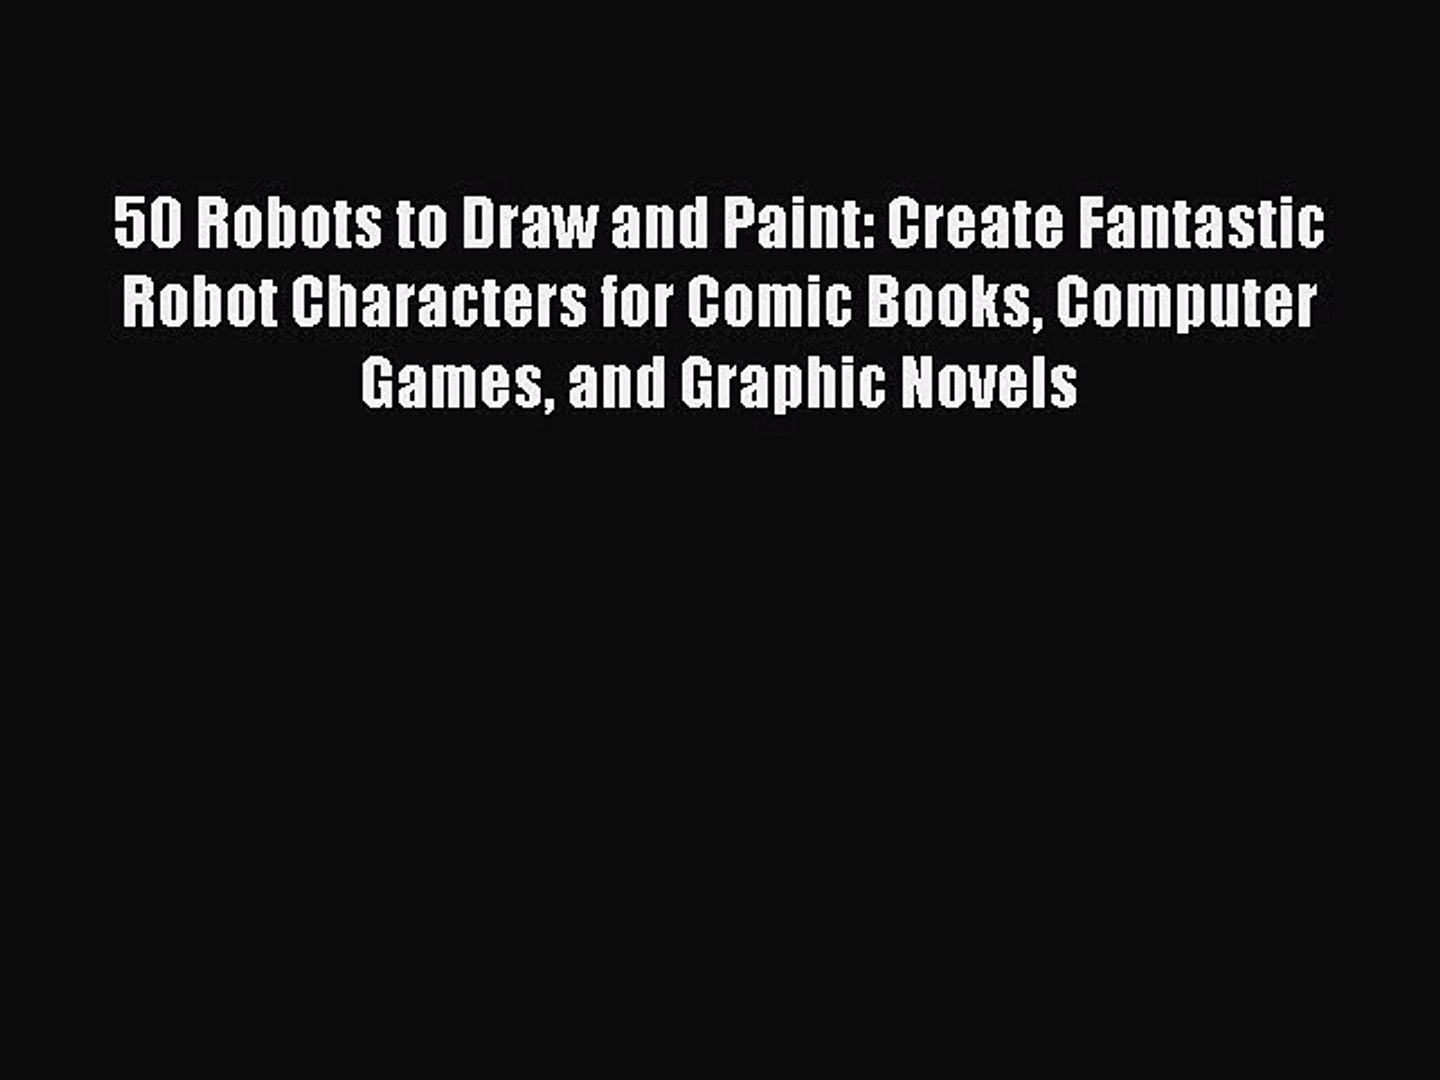 50 Robots to Draw and Paint: Create Fantastic Robot Characters for Comic Books,